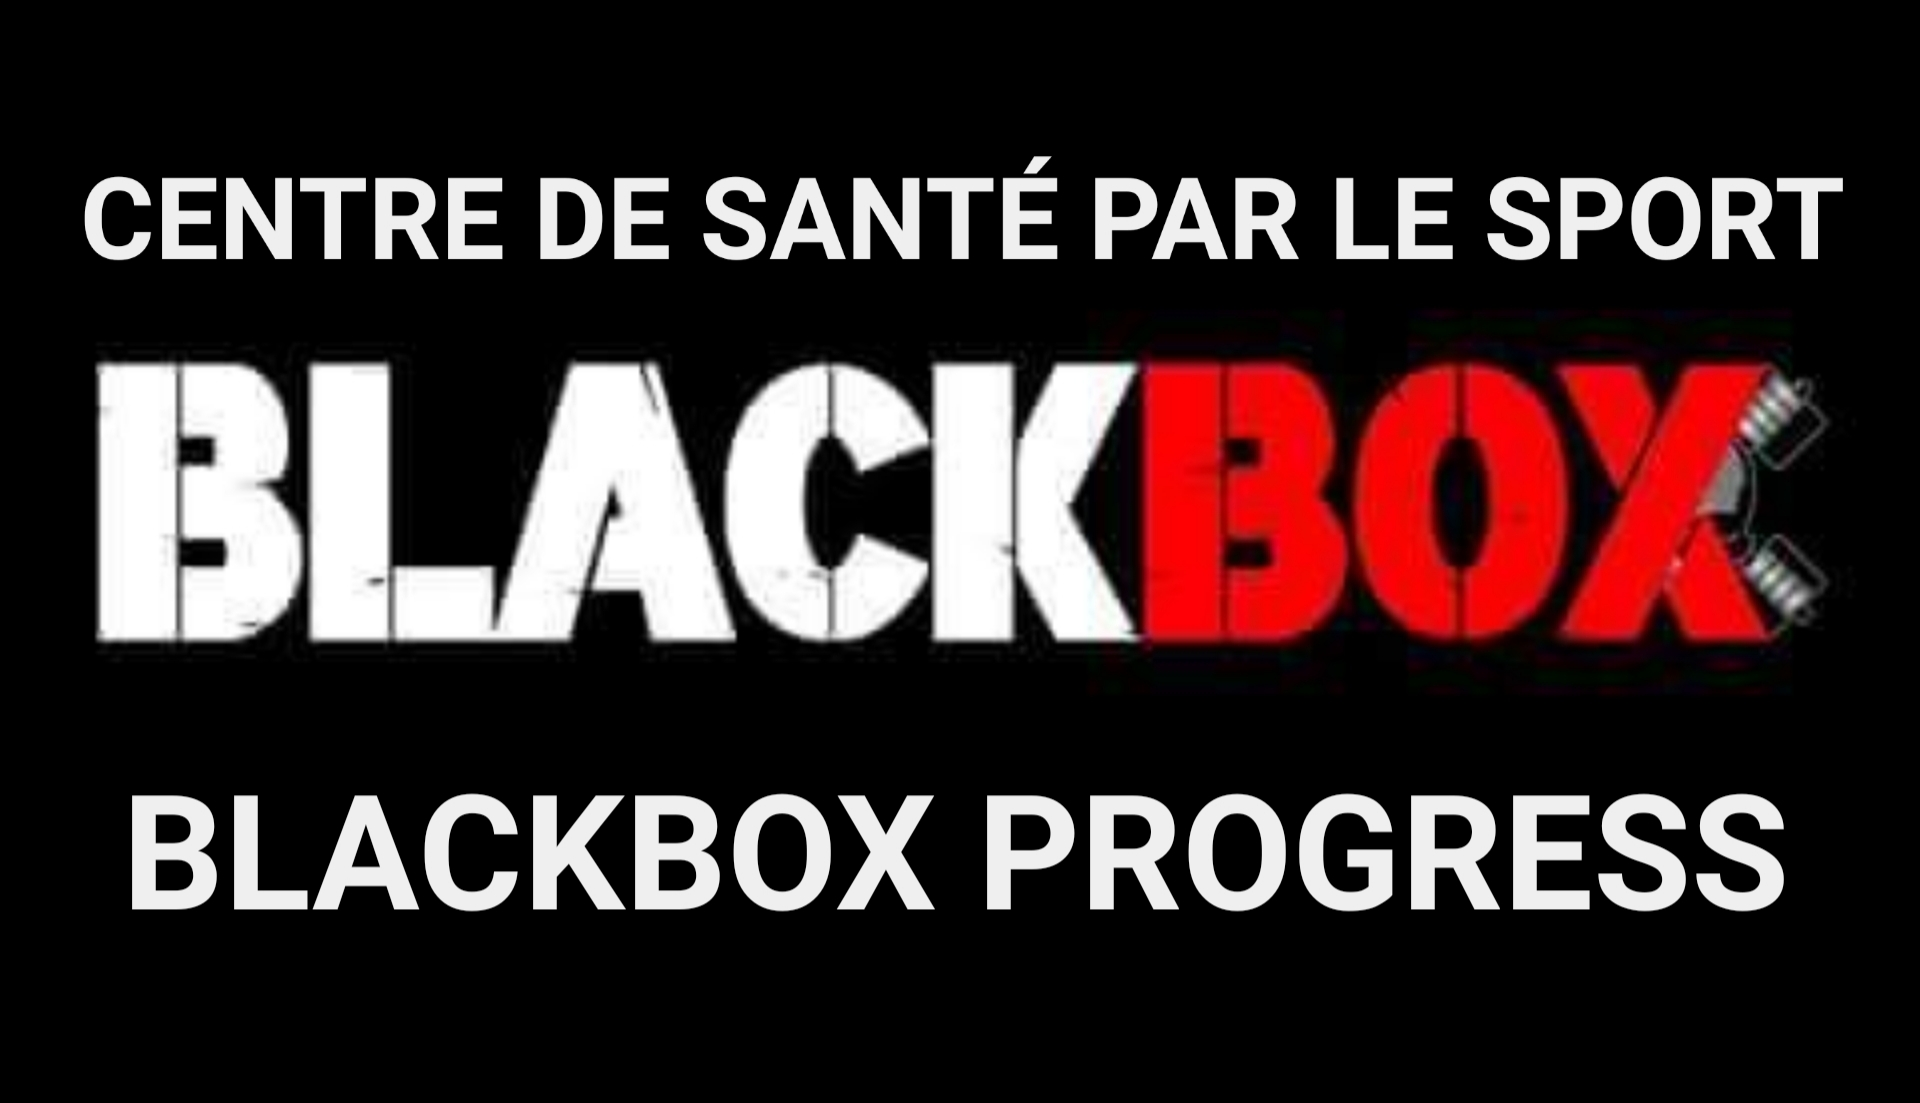 BLACKBOX PROGRESS